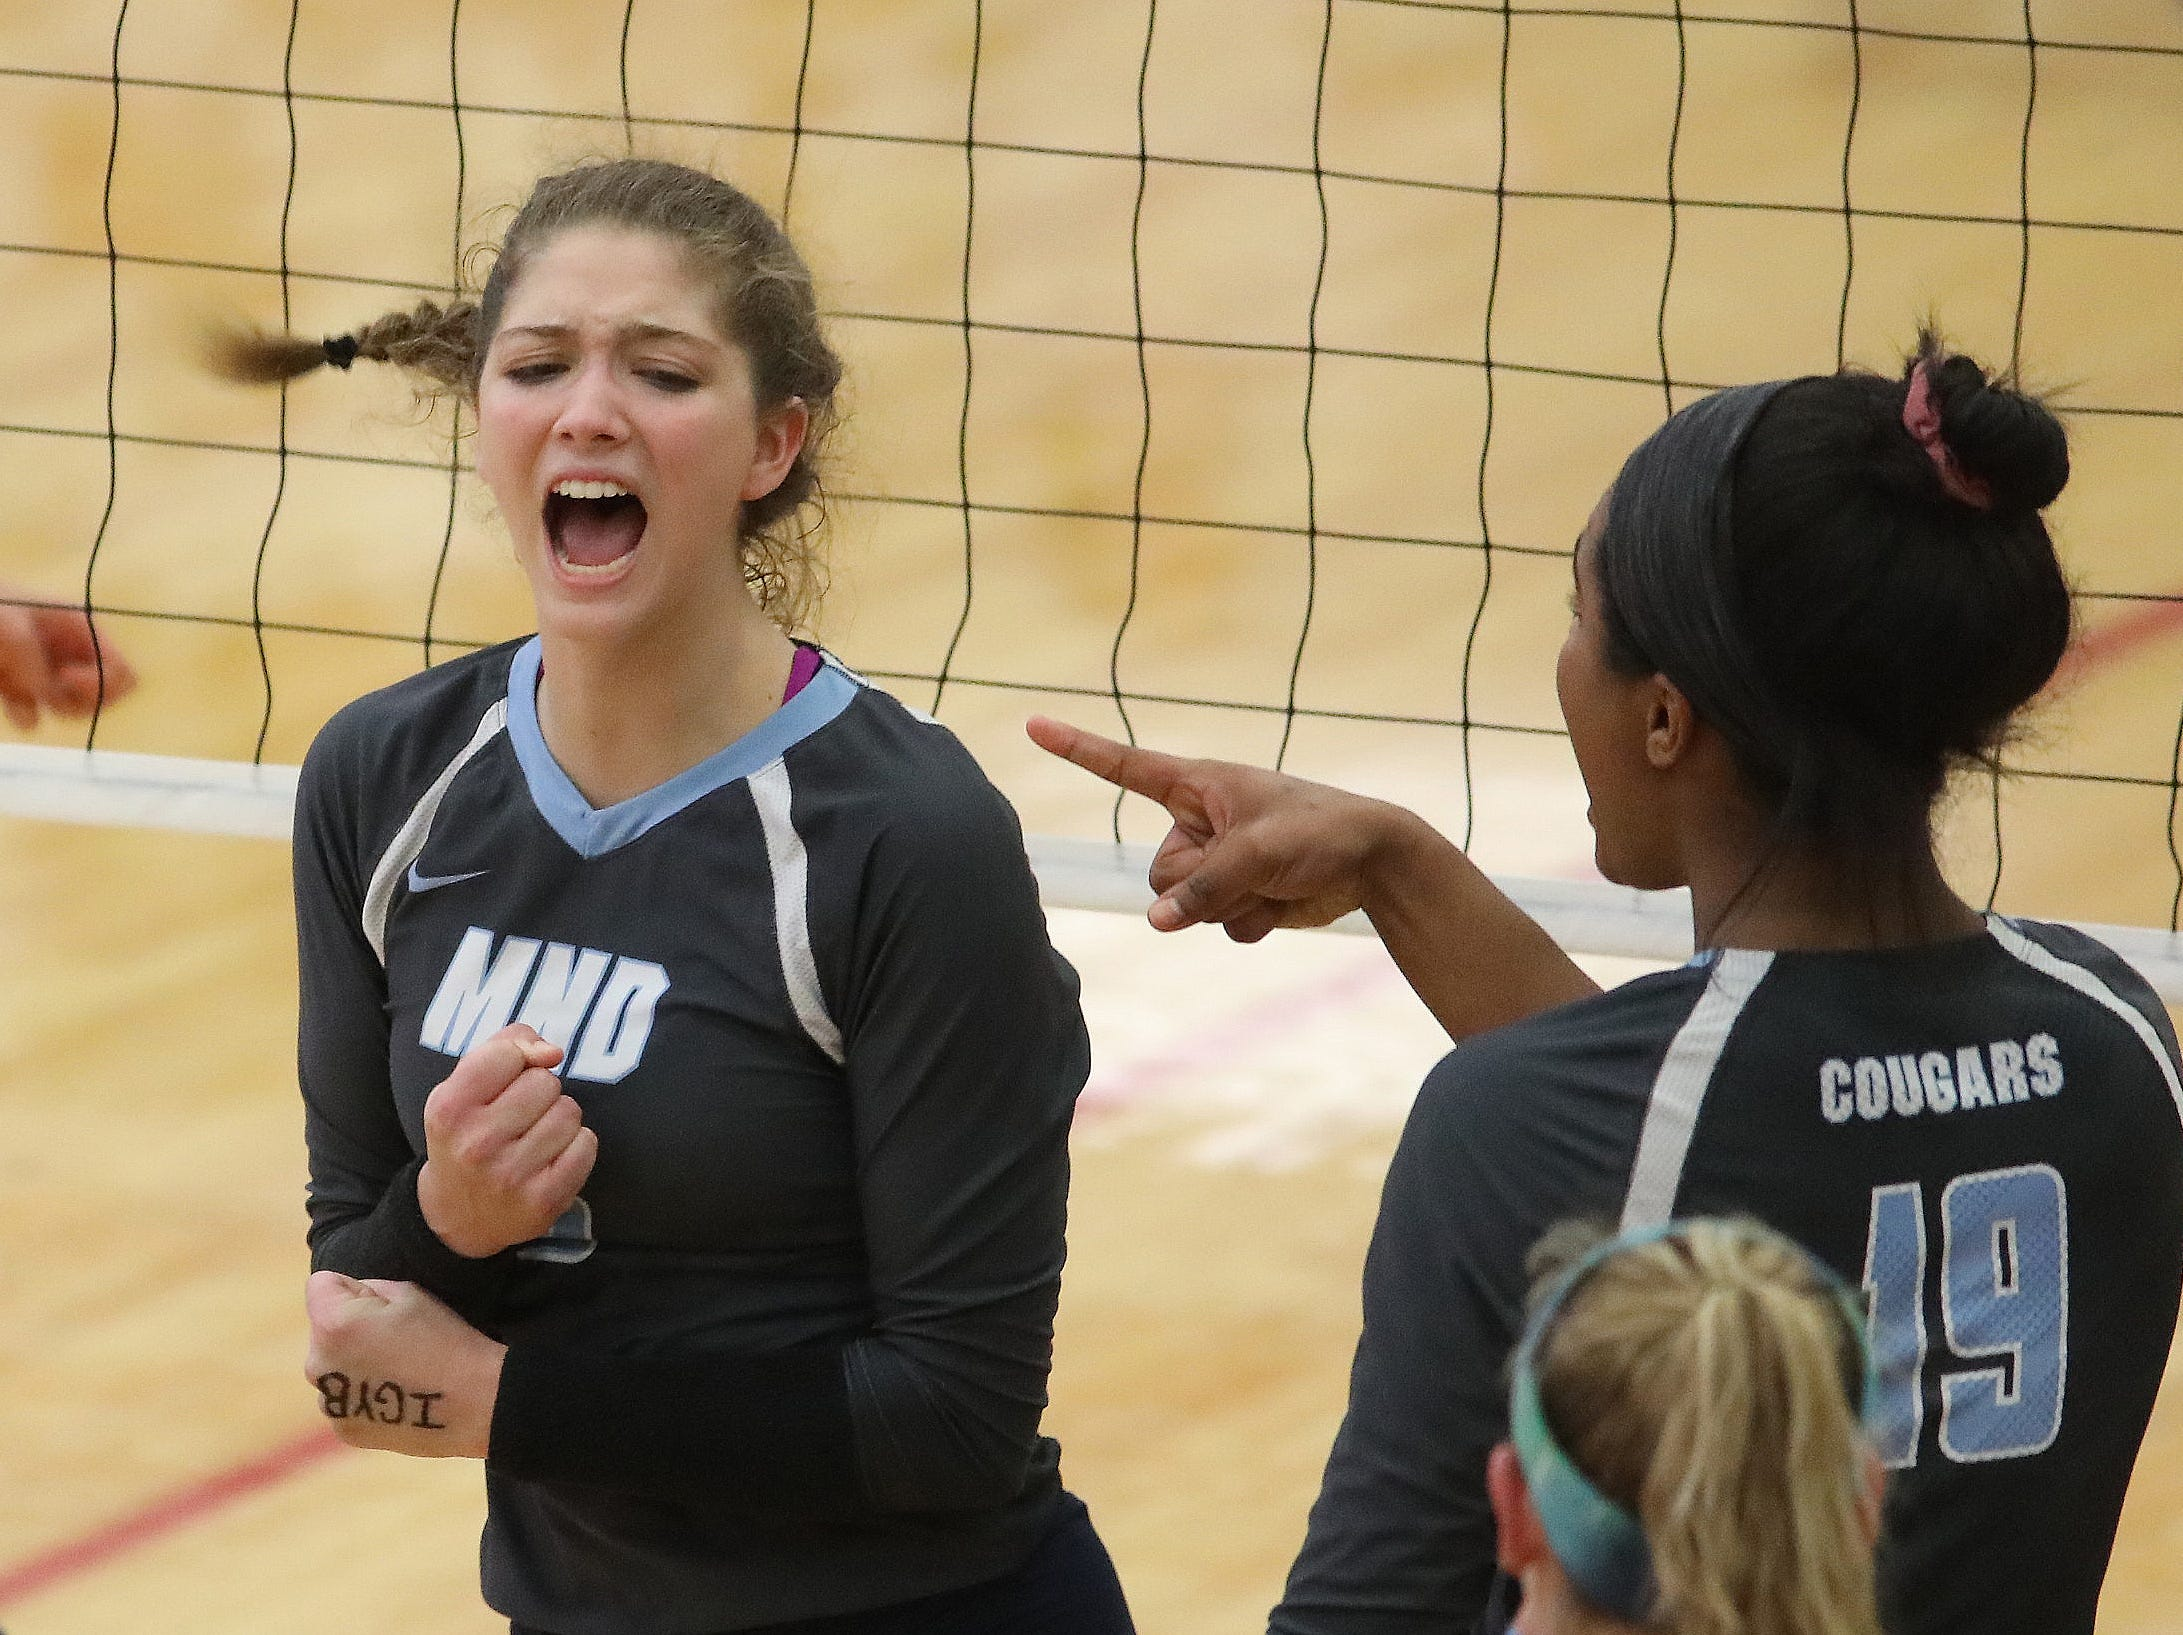 Mount Notre Dame player Samantha Wolf reacts during their regional volleyball game against Mercy-McAuley, Thursday, Nov. 1, 2018.